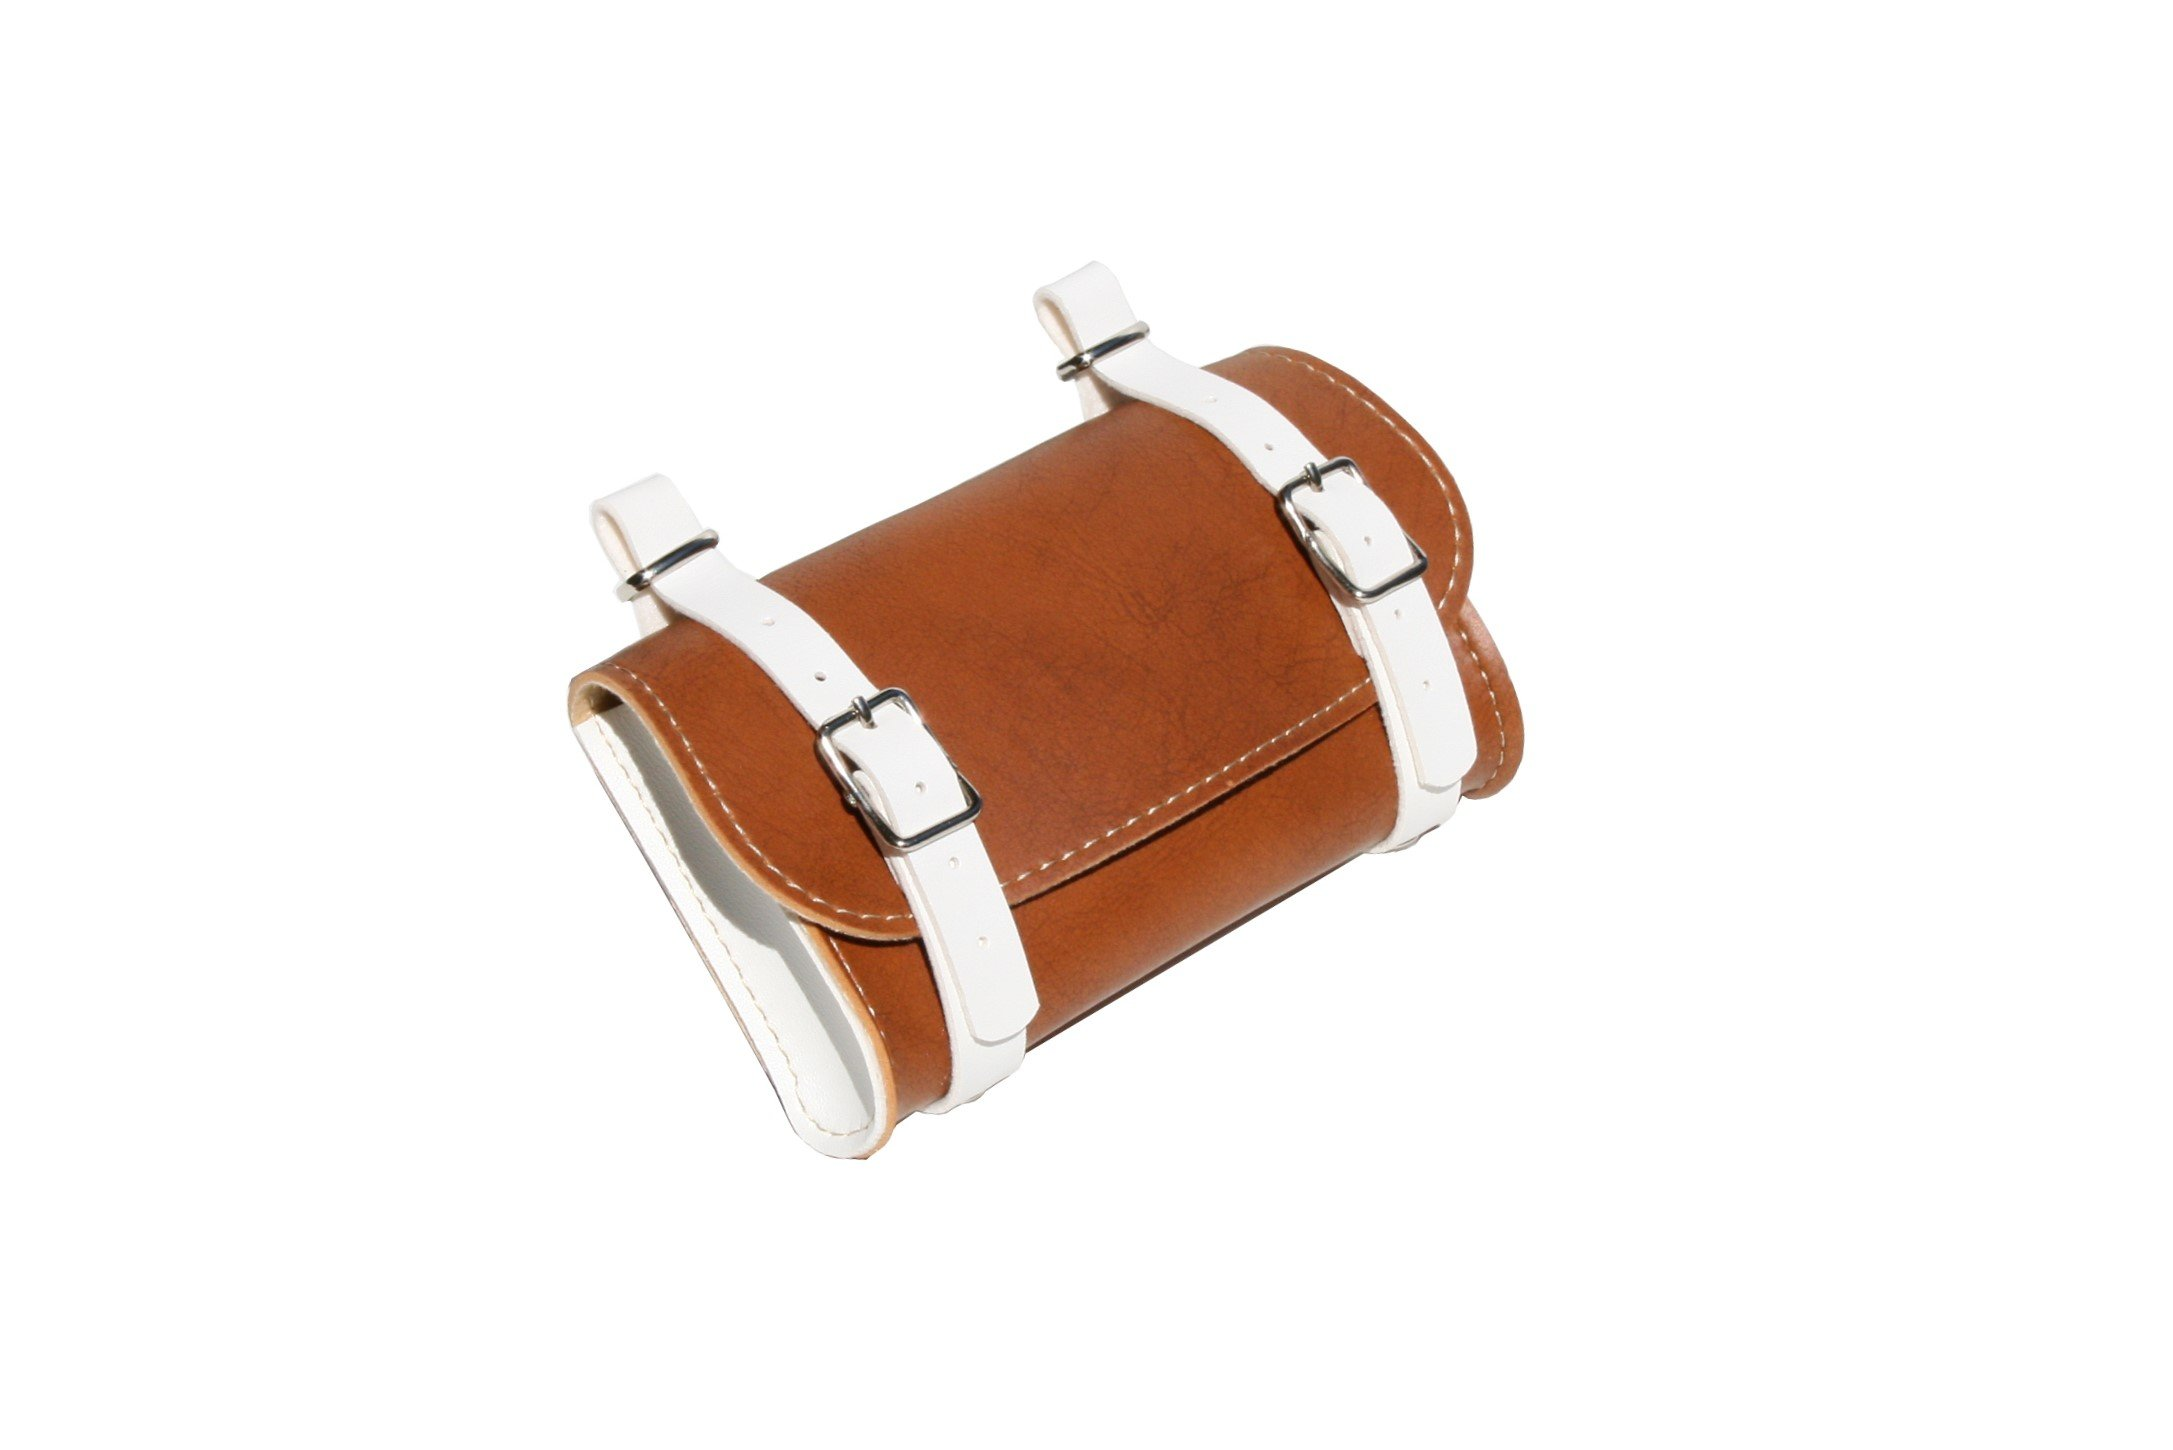 Rear Saddle Bicycle Bag Classic. Bike pannier. Cycling storage. Vintage Style. Simil Leather. Color Honey/White. 100% MADE IN ITALY